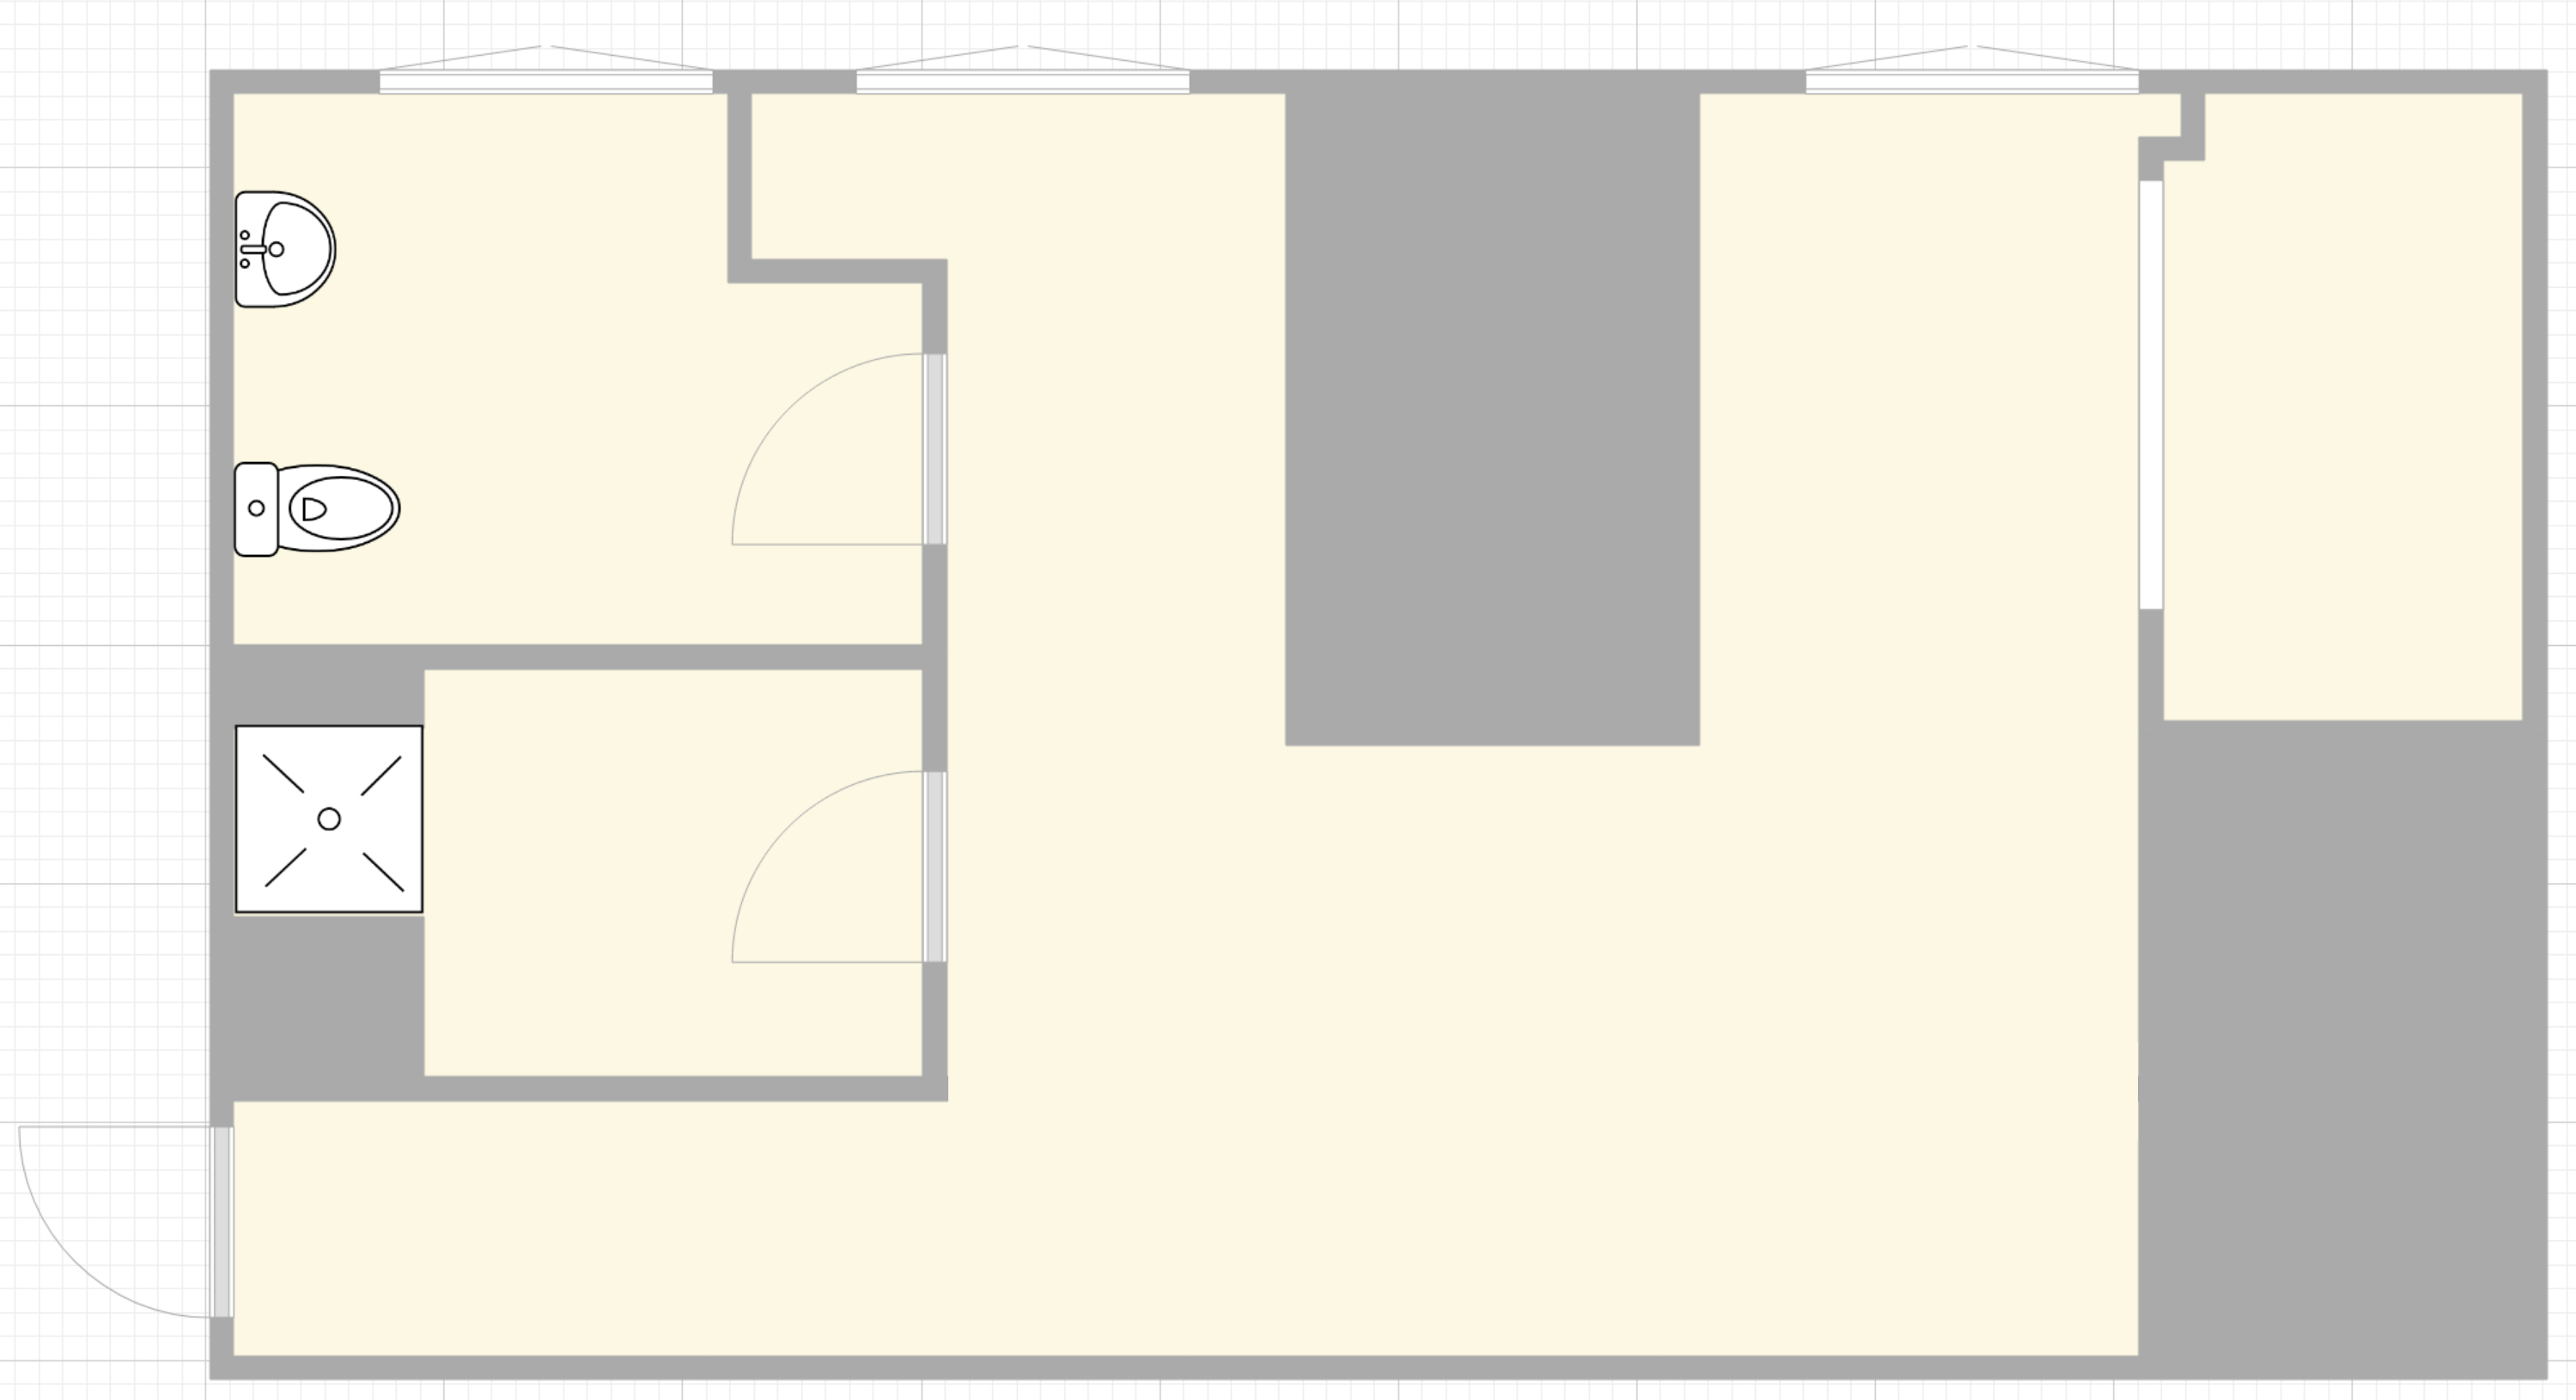 file:57n_upstairs_plan_v4.png